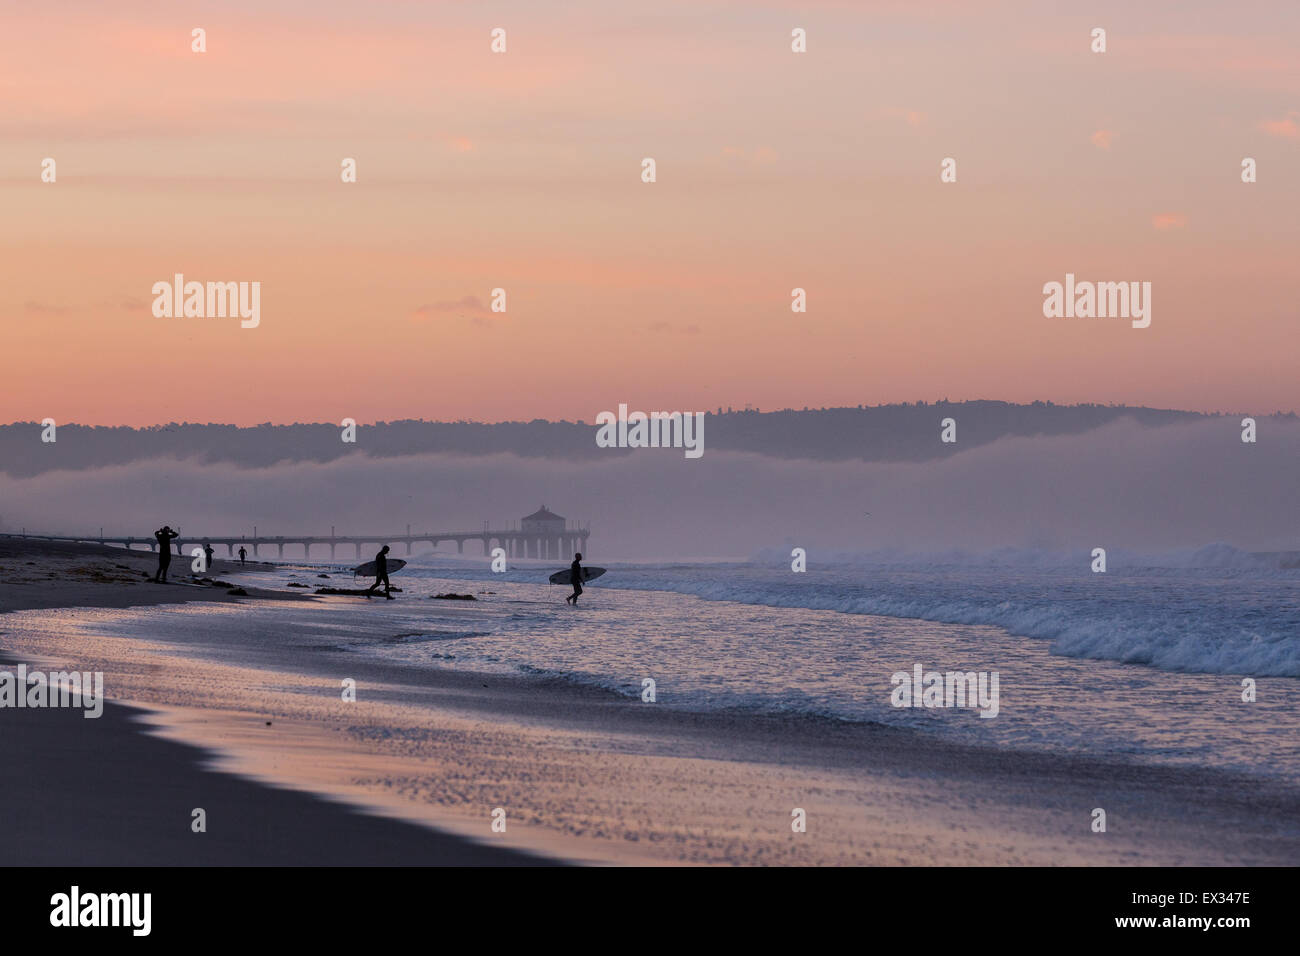 Surfers walk into the ocean under purple clouds in Manhattan Beach, California. - Stock Image